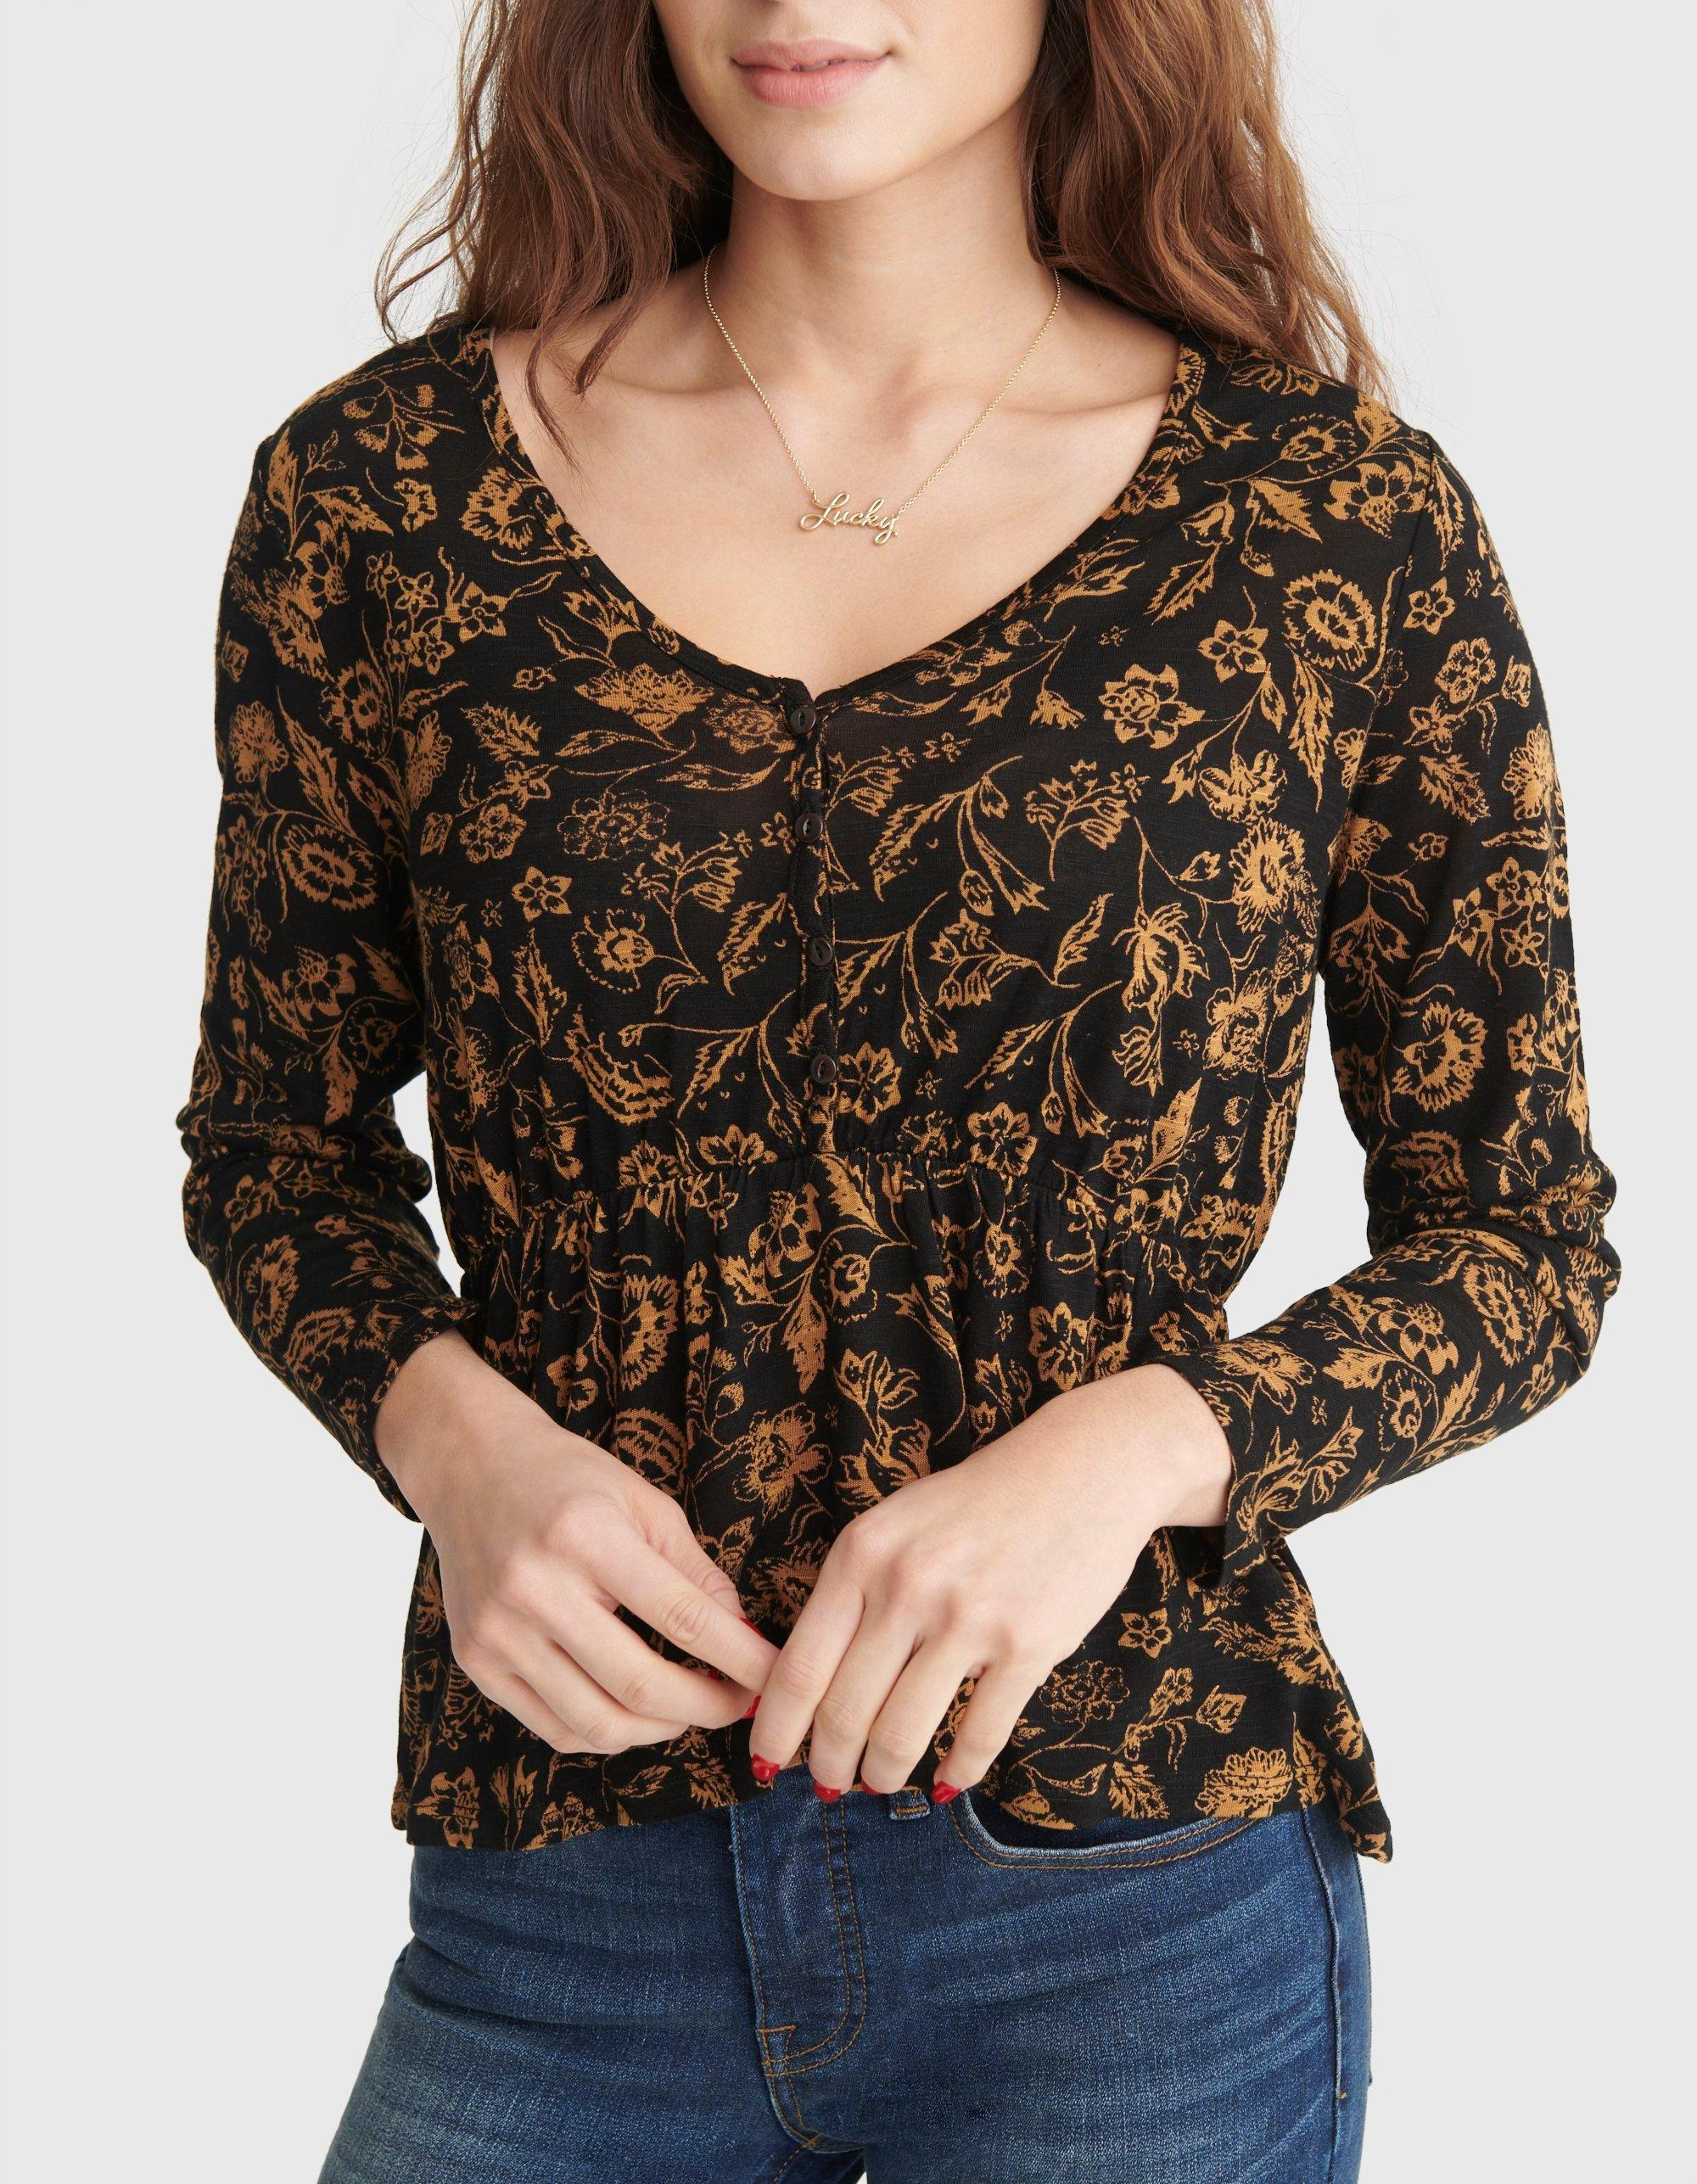 RELAXED-FIT PEPLUM V-NECK TOP, image 4